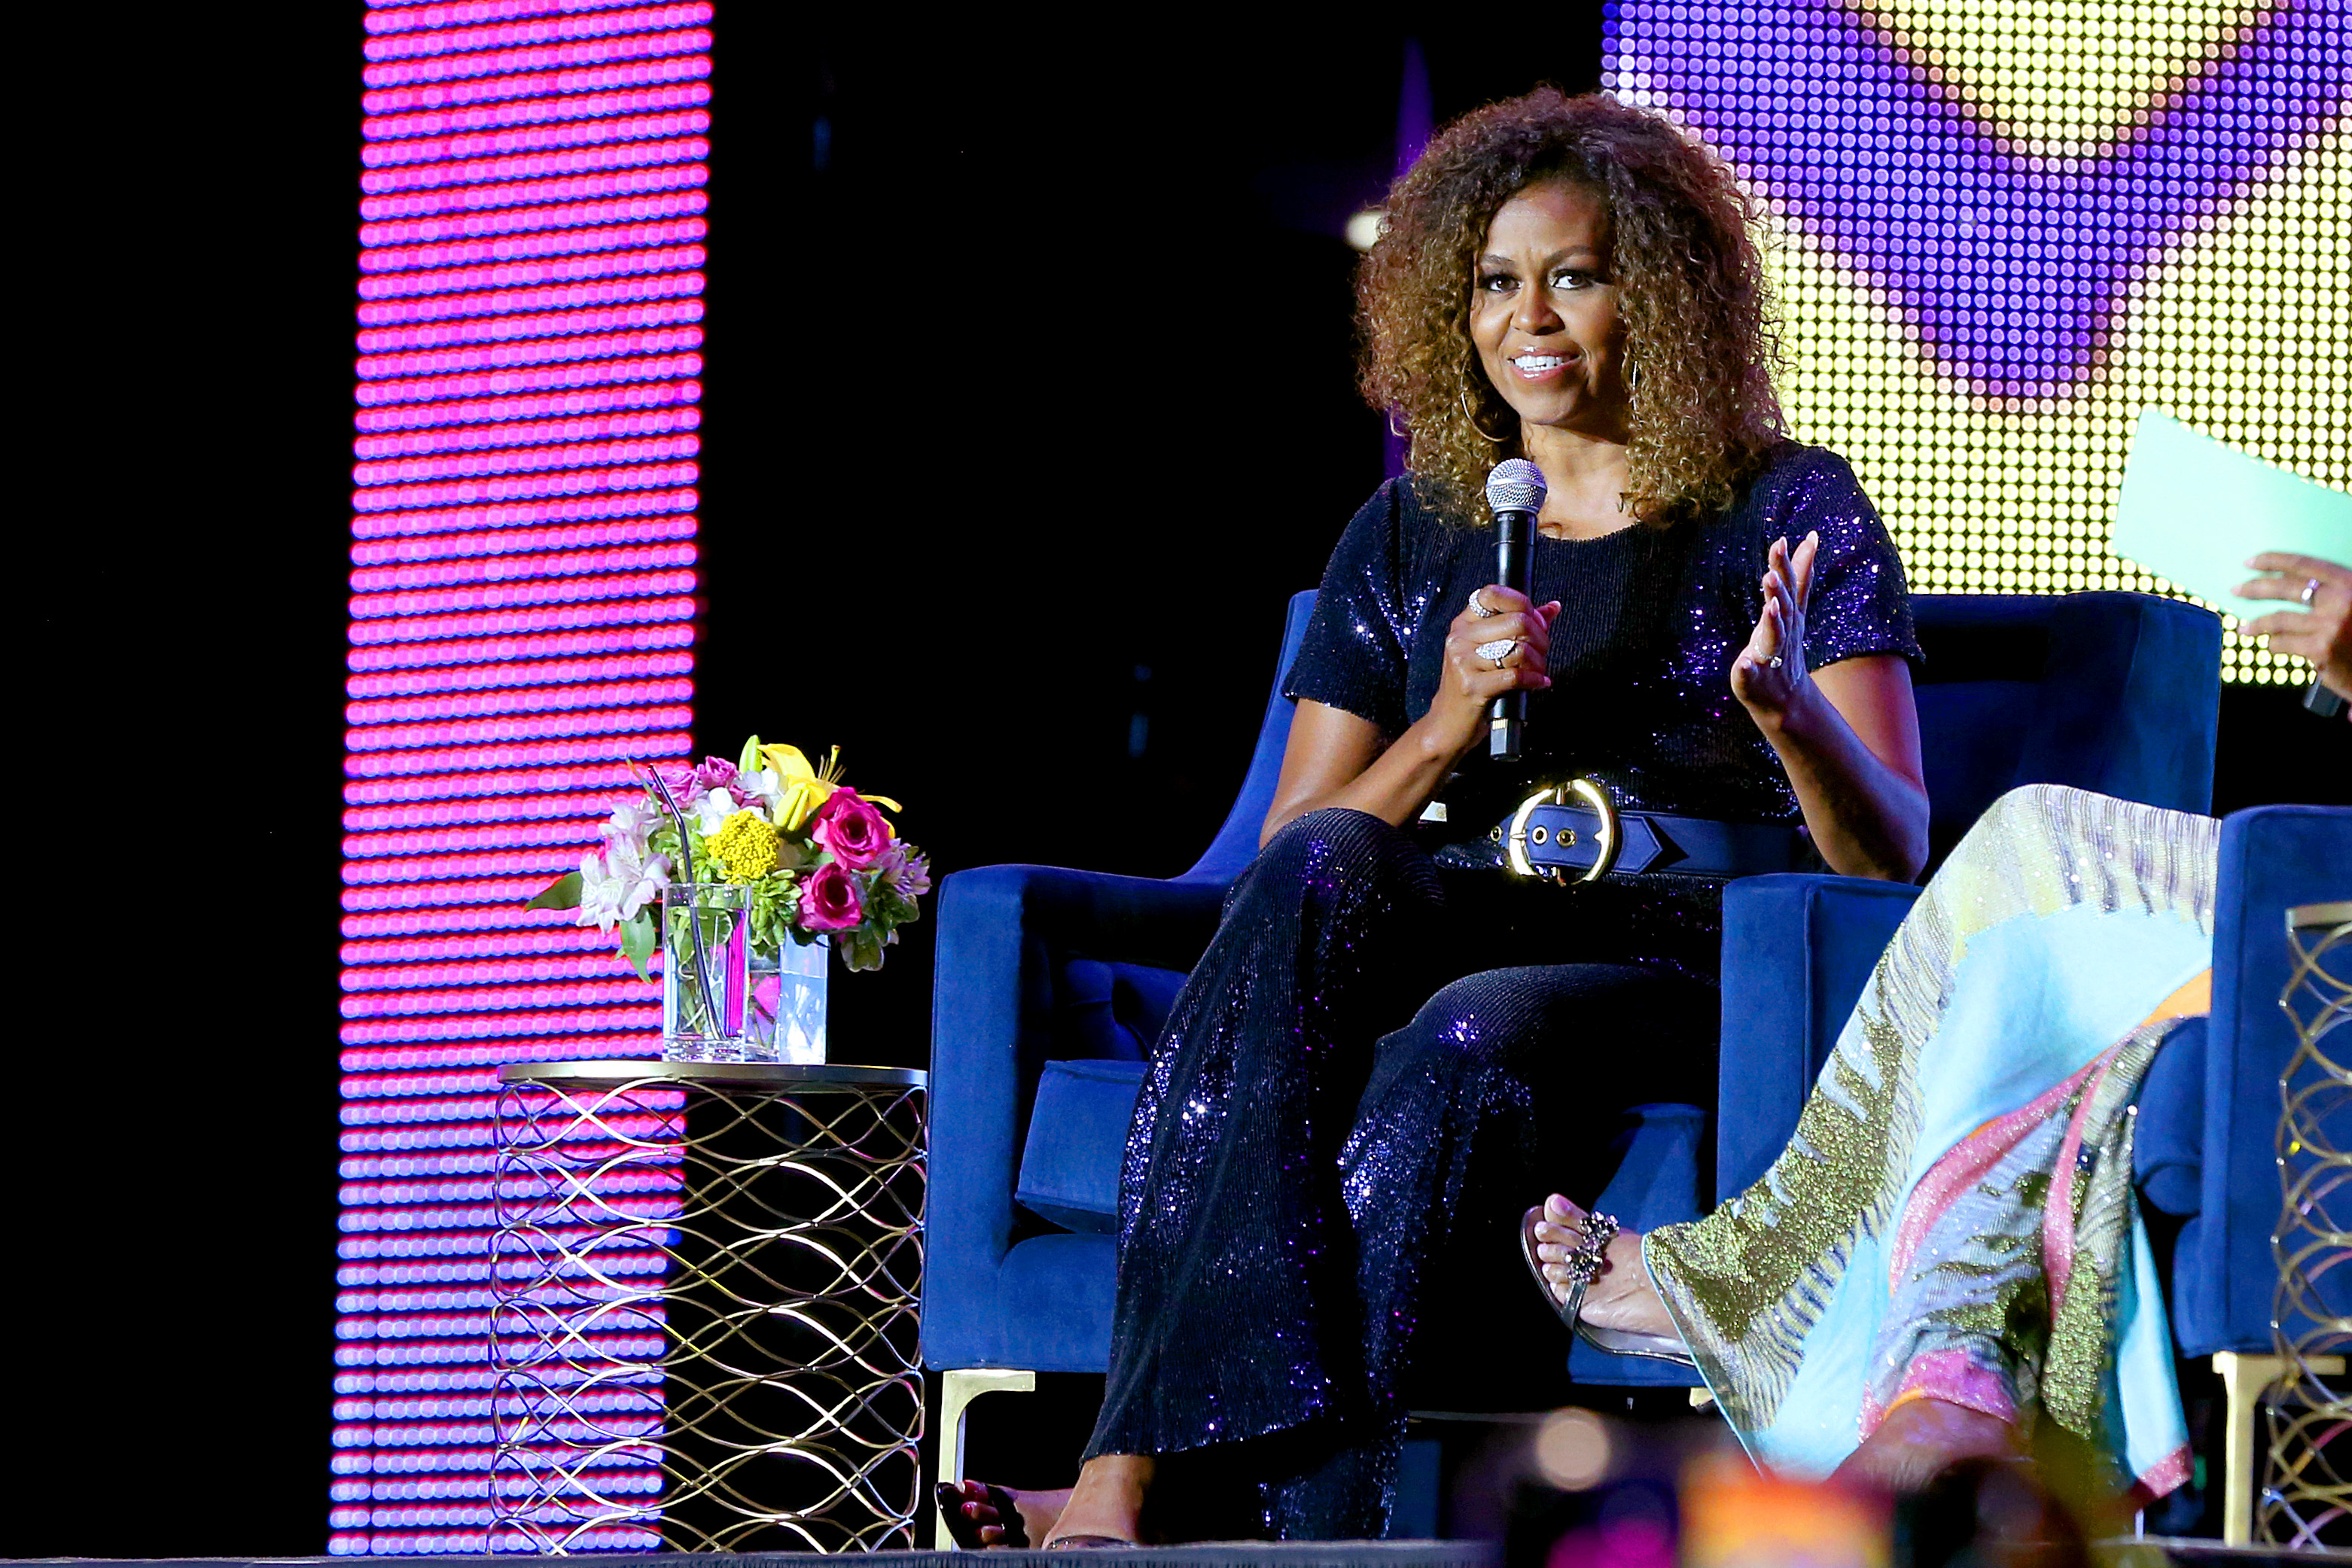 NEW ORLEANS, LOUISIANA - JULY 06: Michelle Obama speaks onstage during the 2019 ESSENCE Festival Presented By Coca-Cola at Louisiana Superdome on July 06, 2019 in New Orleans, Louisiana. (Photo by Bennett Raglin/Getty Images for ESSENCE)